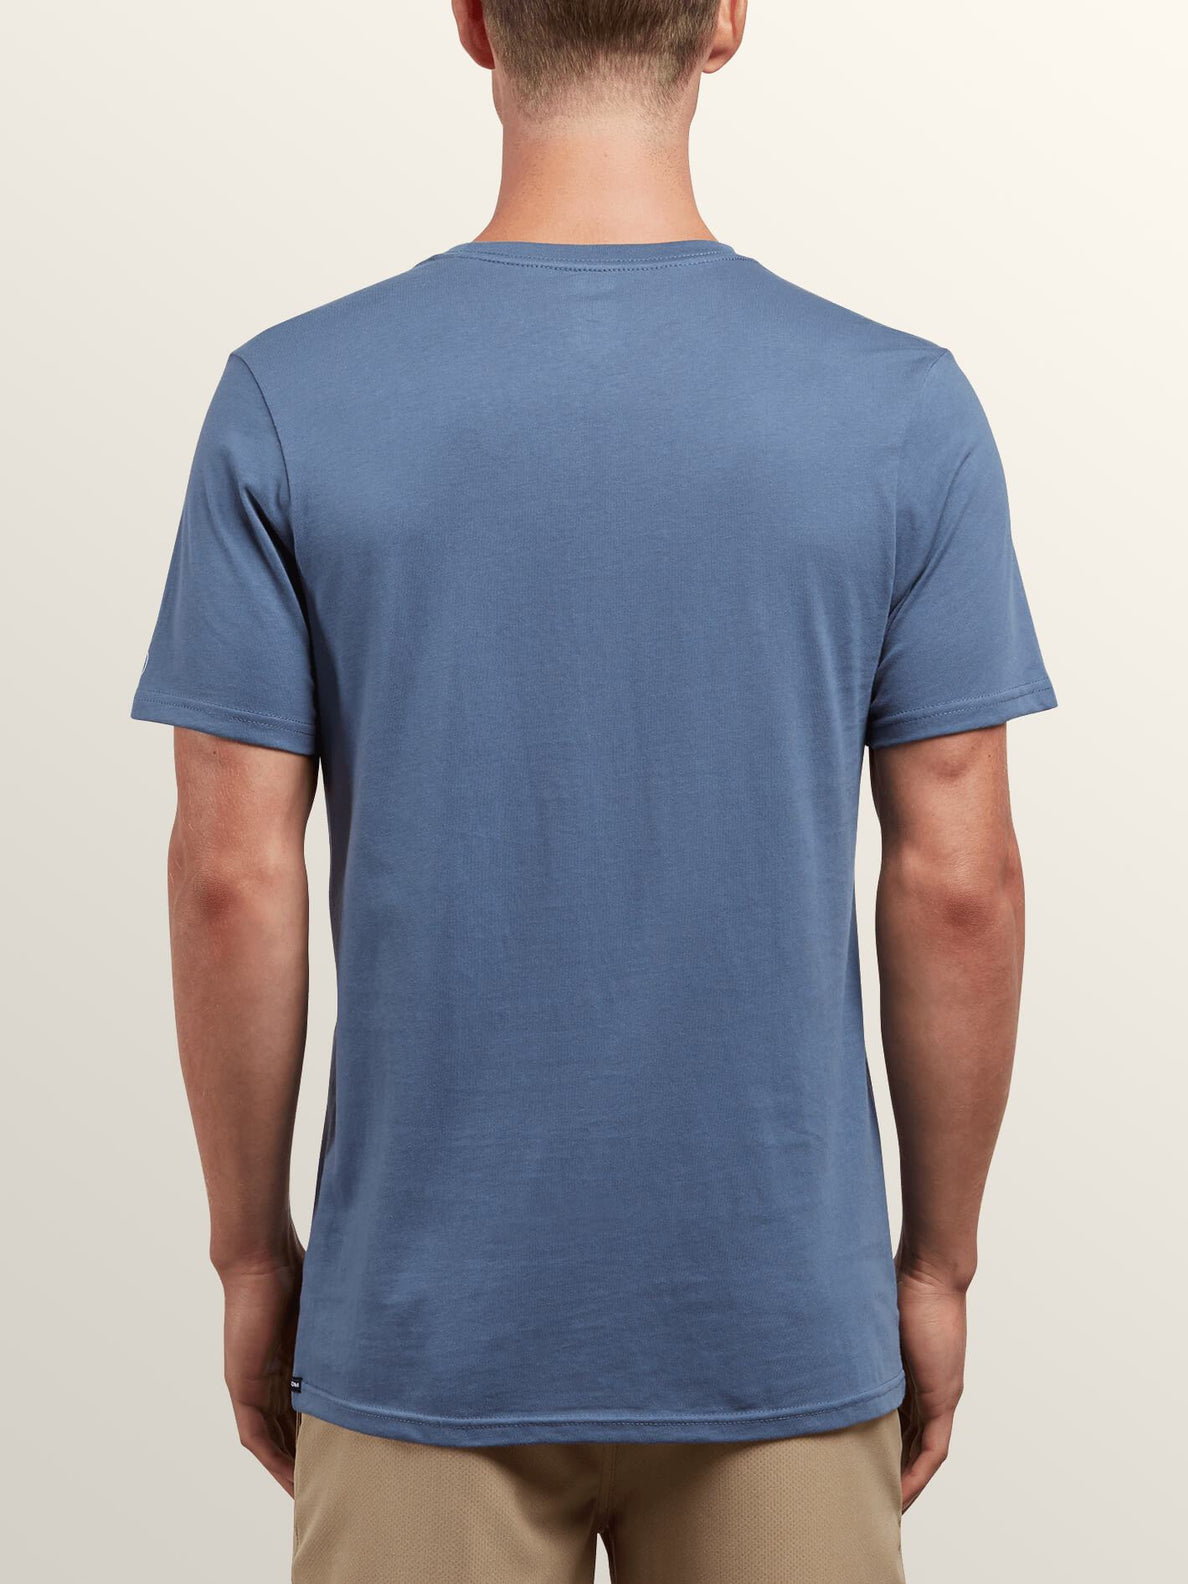 Solid Ss Tee In Deep Blue, Back View